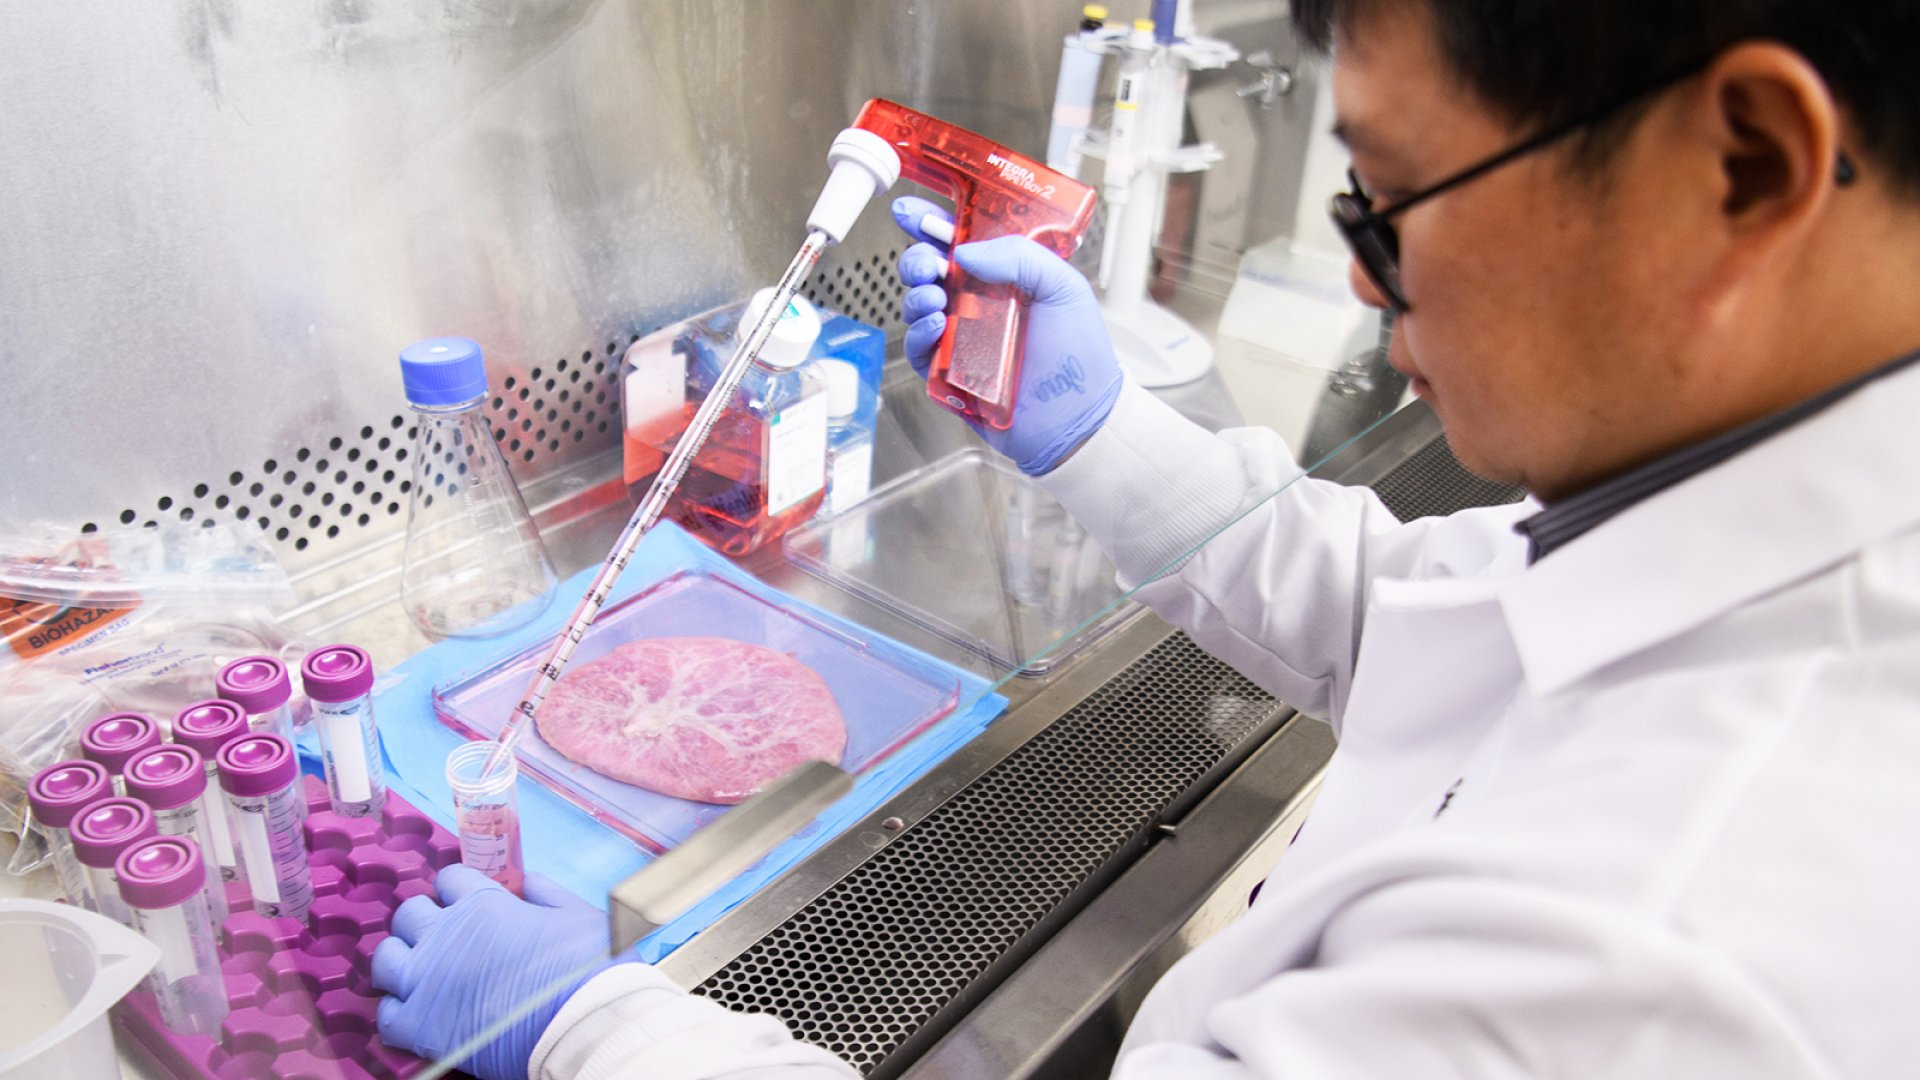 A scientist handles stem cells extracted from a human placenta.